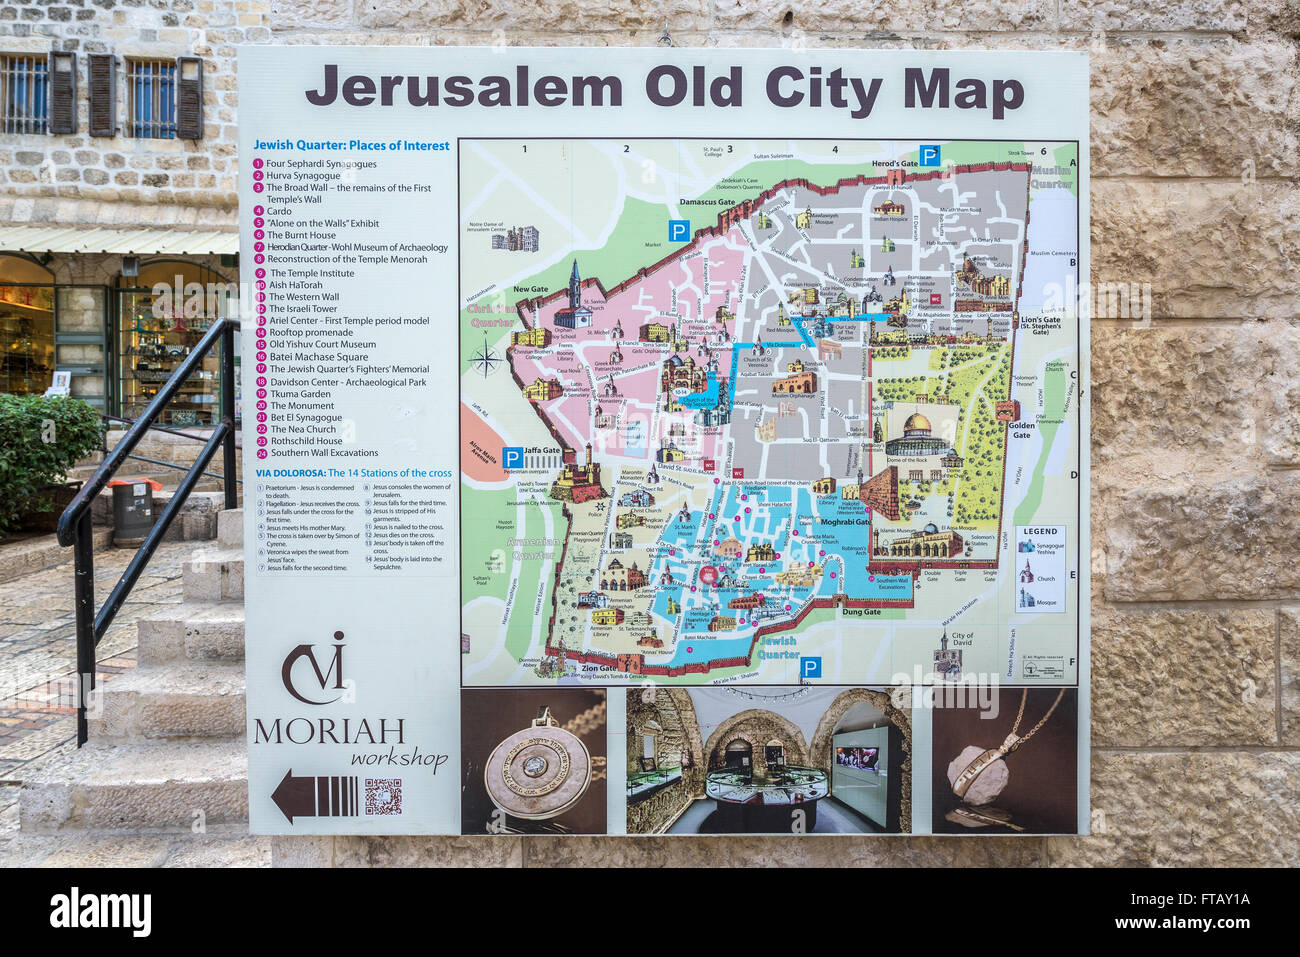 Old city map in jewish quarter old town of jerusalem israel stock old city map in jewish quarter old town of jerusalem israel gumiabroncs Image collections